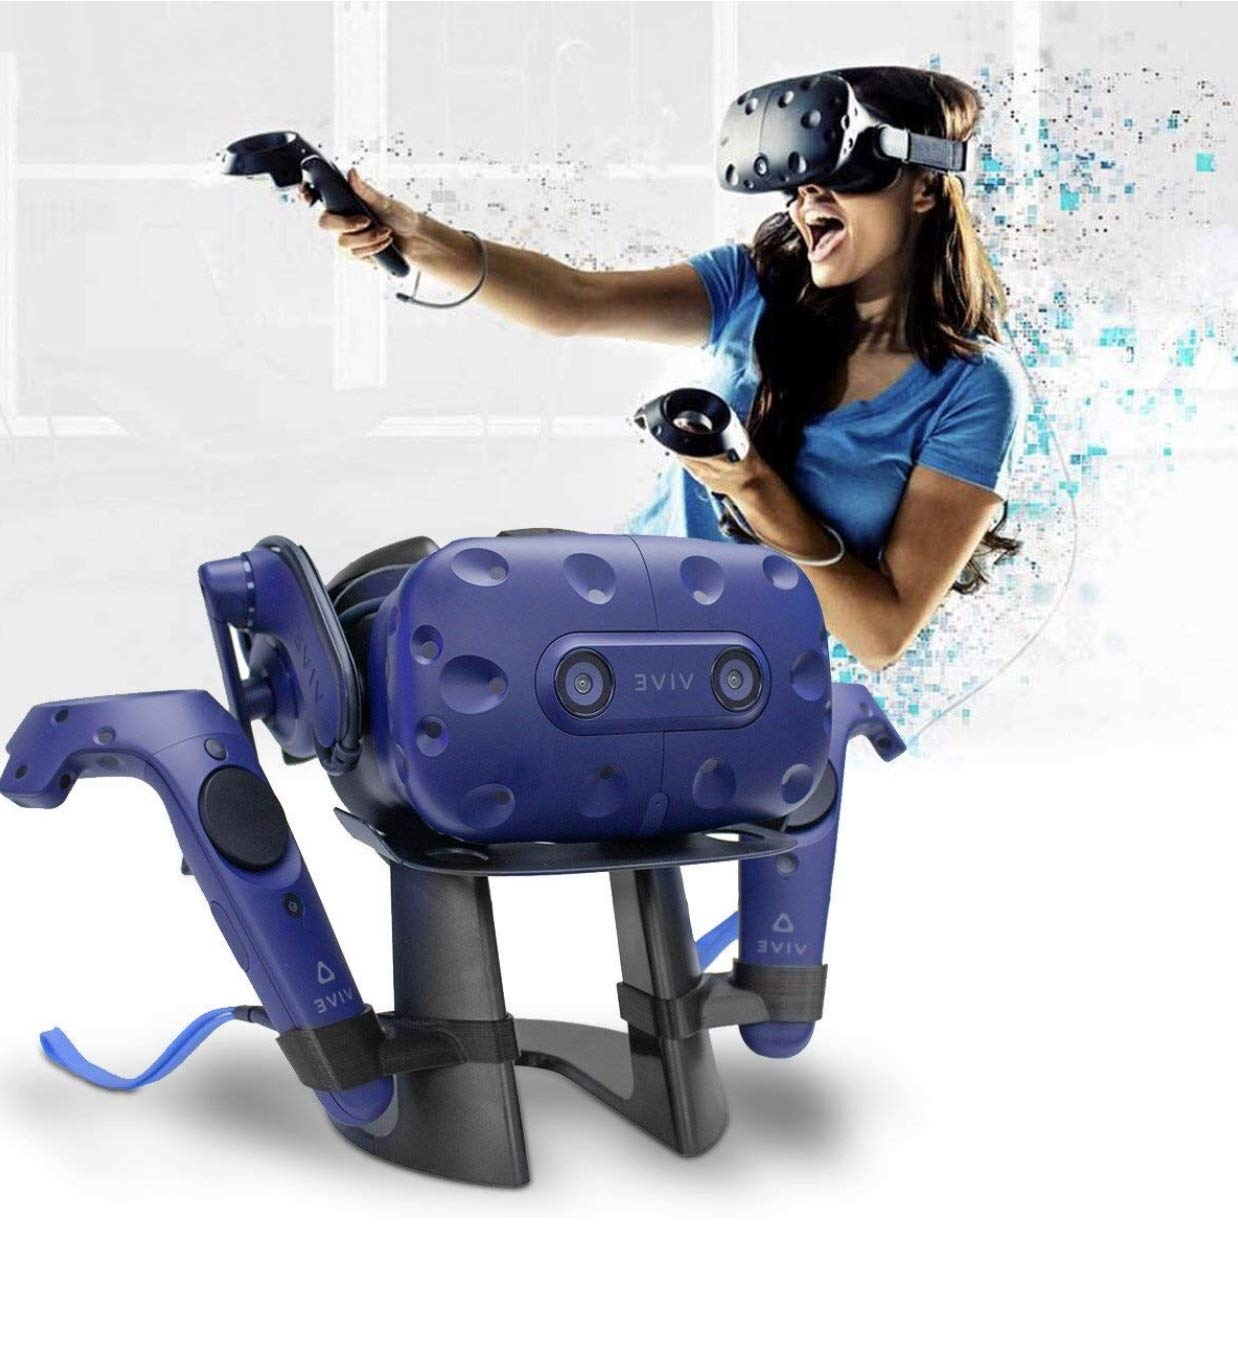 MBstand - Headset and Controller Stand for both the HTC Vive and HTC Vive Pro